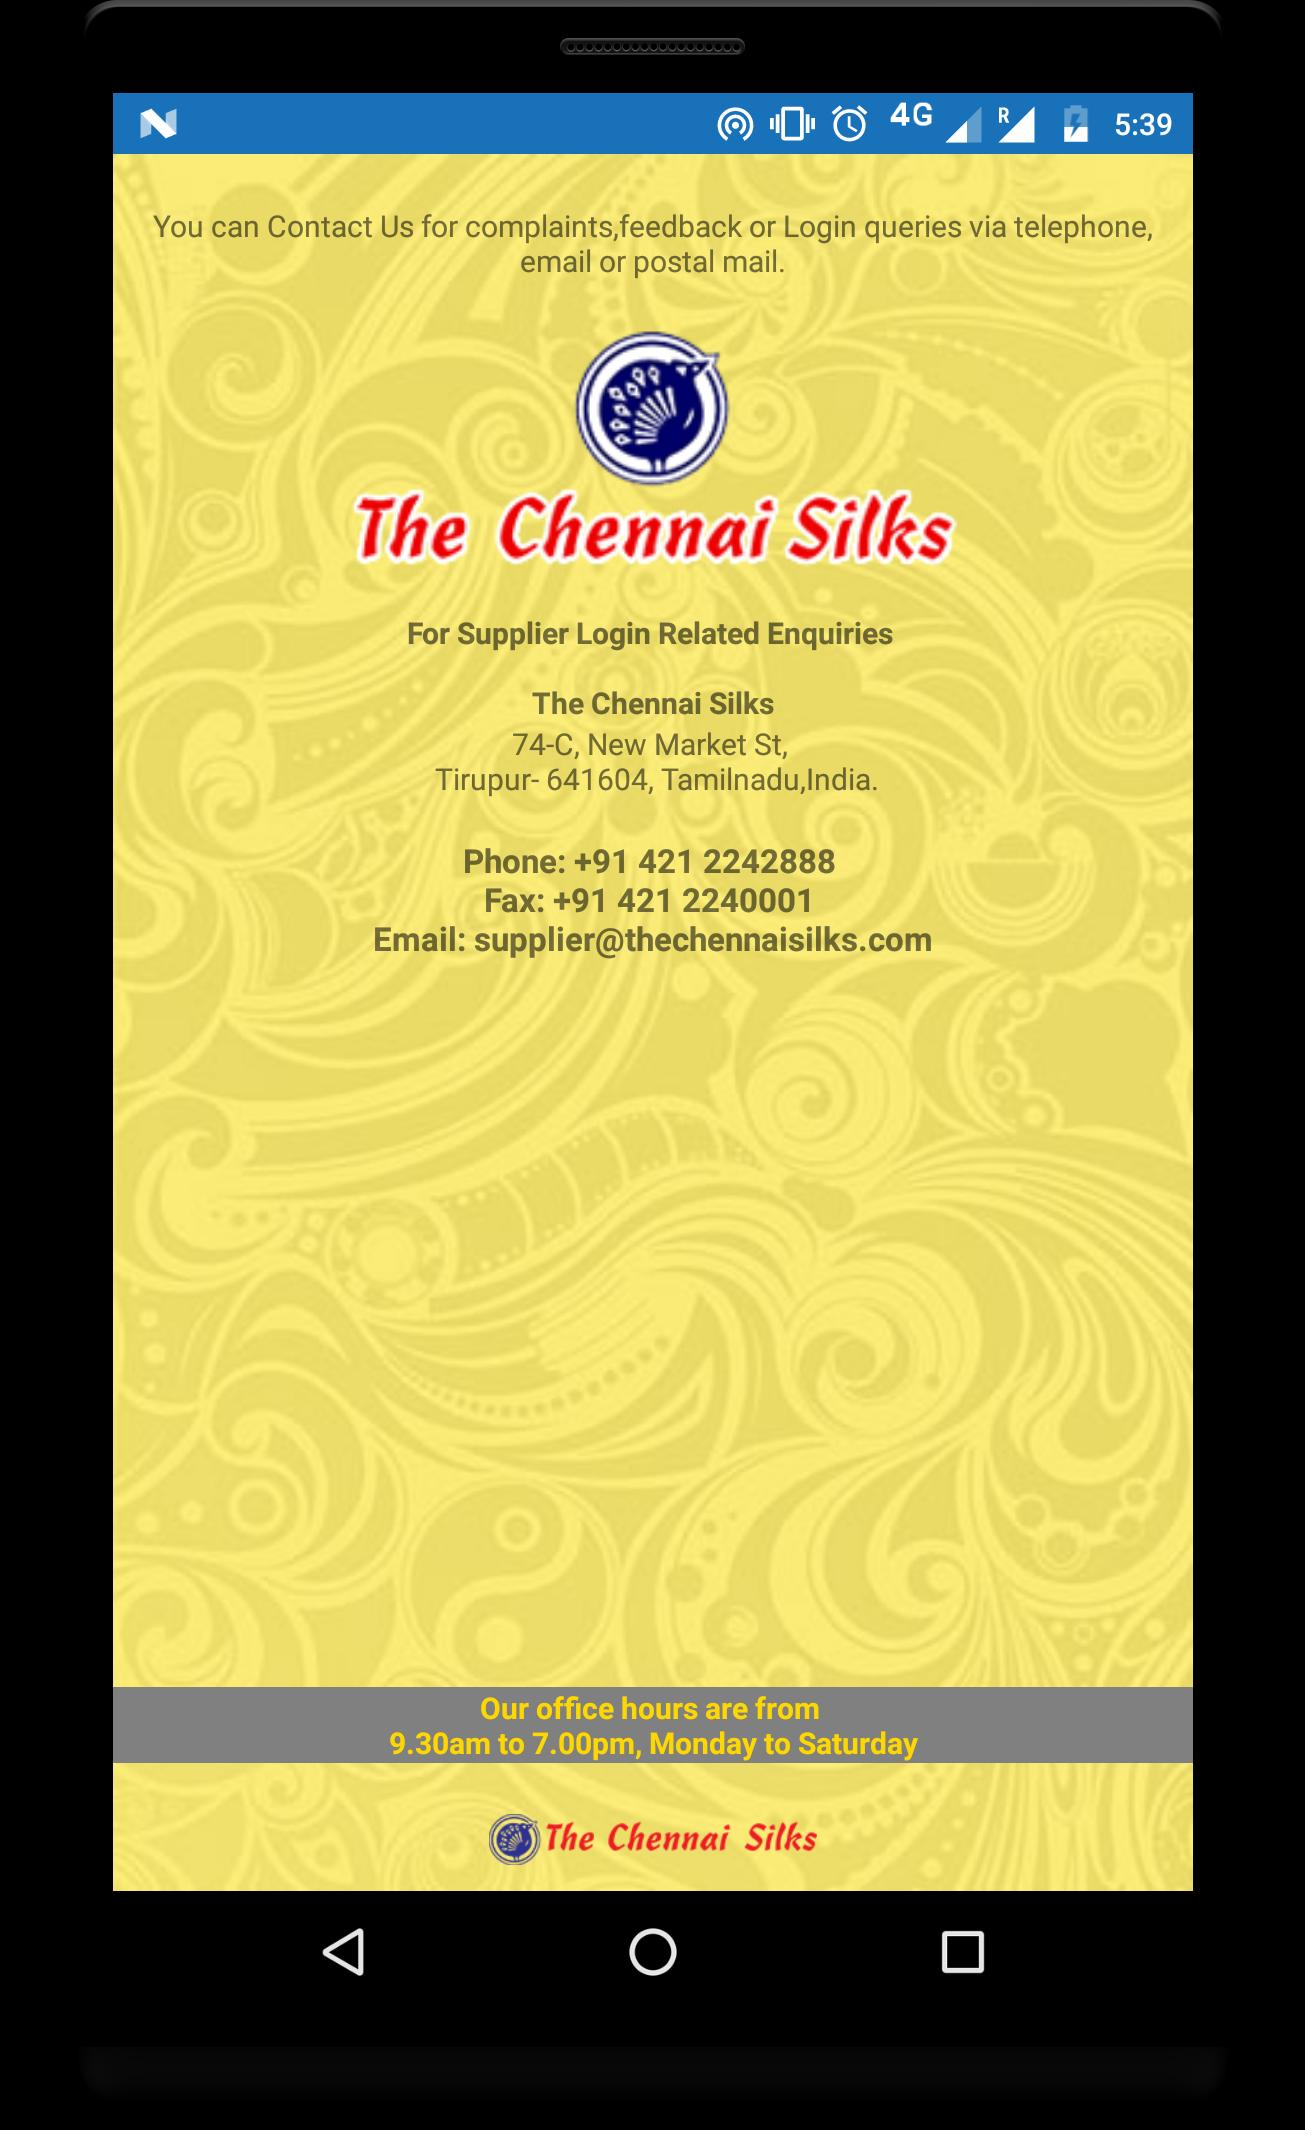 THE CHENNAI SILKS - SUPPLIER for Android - APK Download